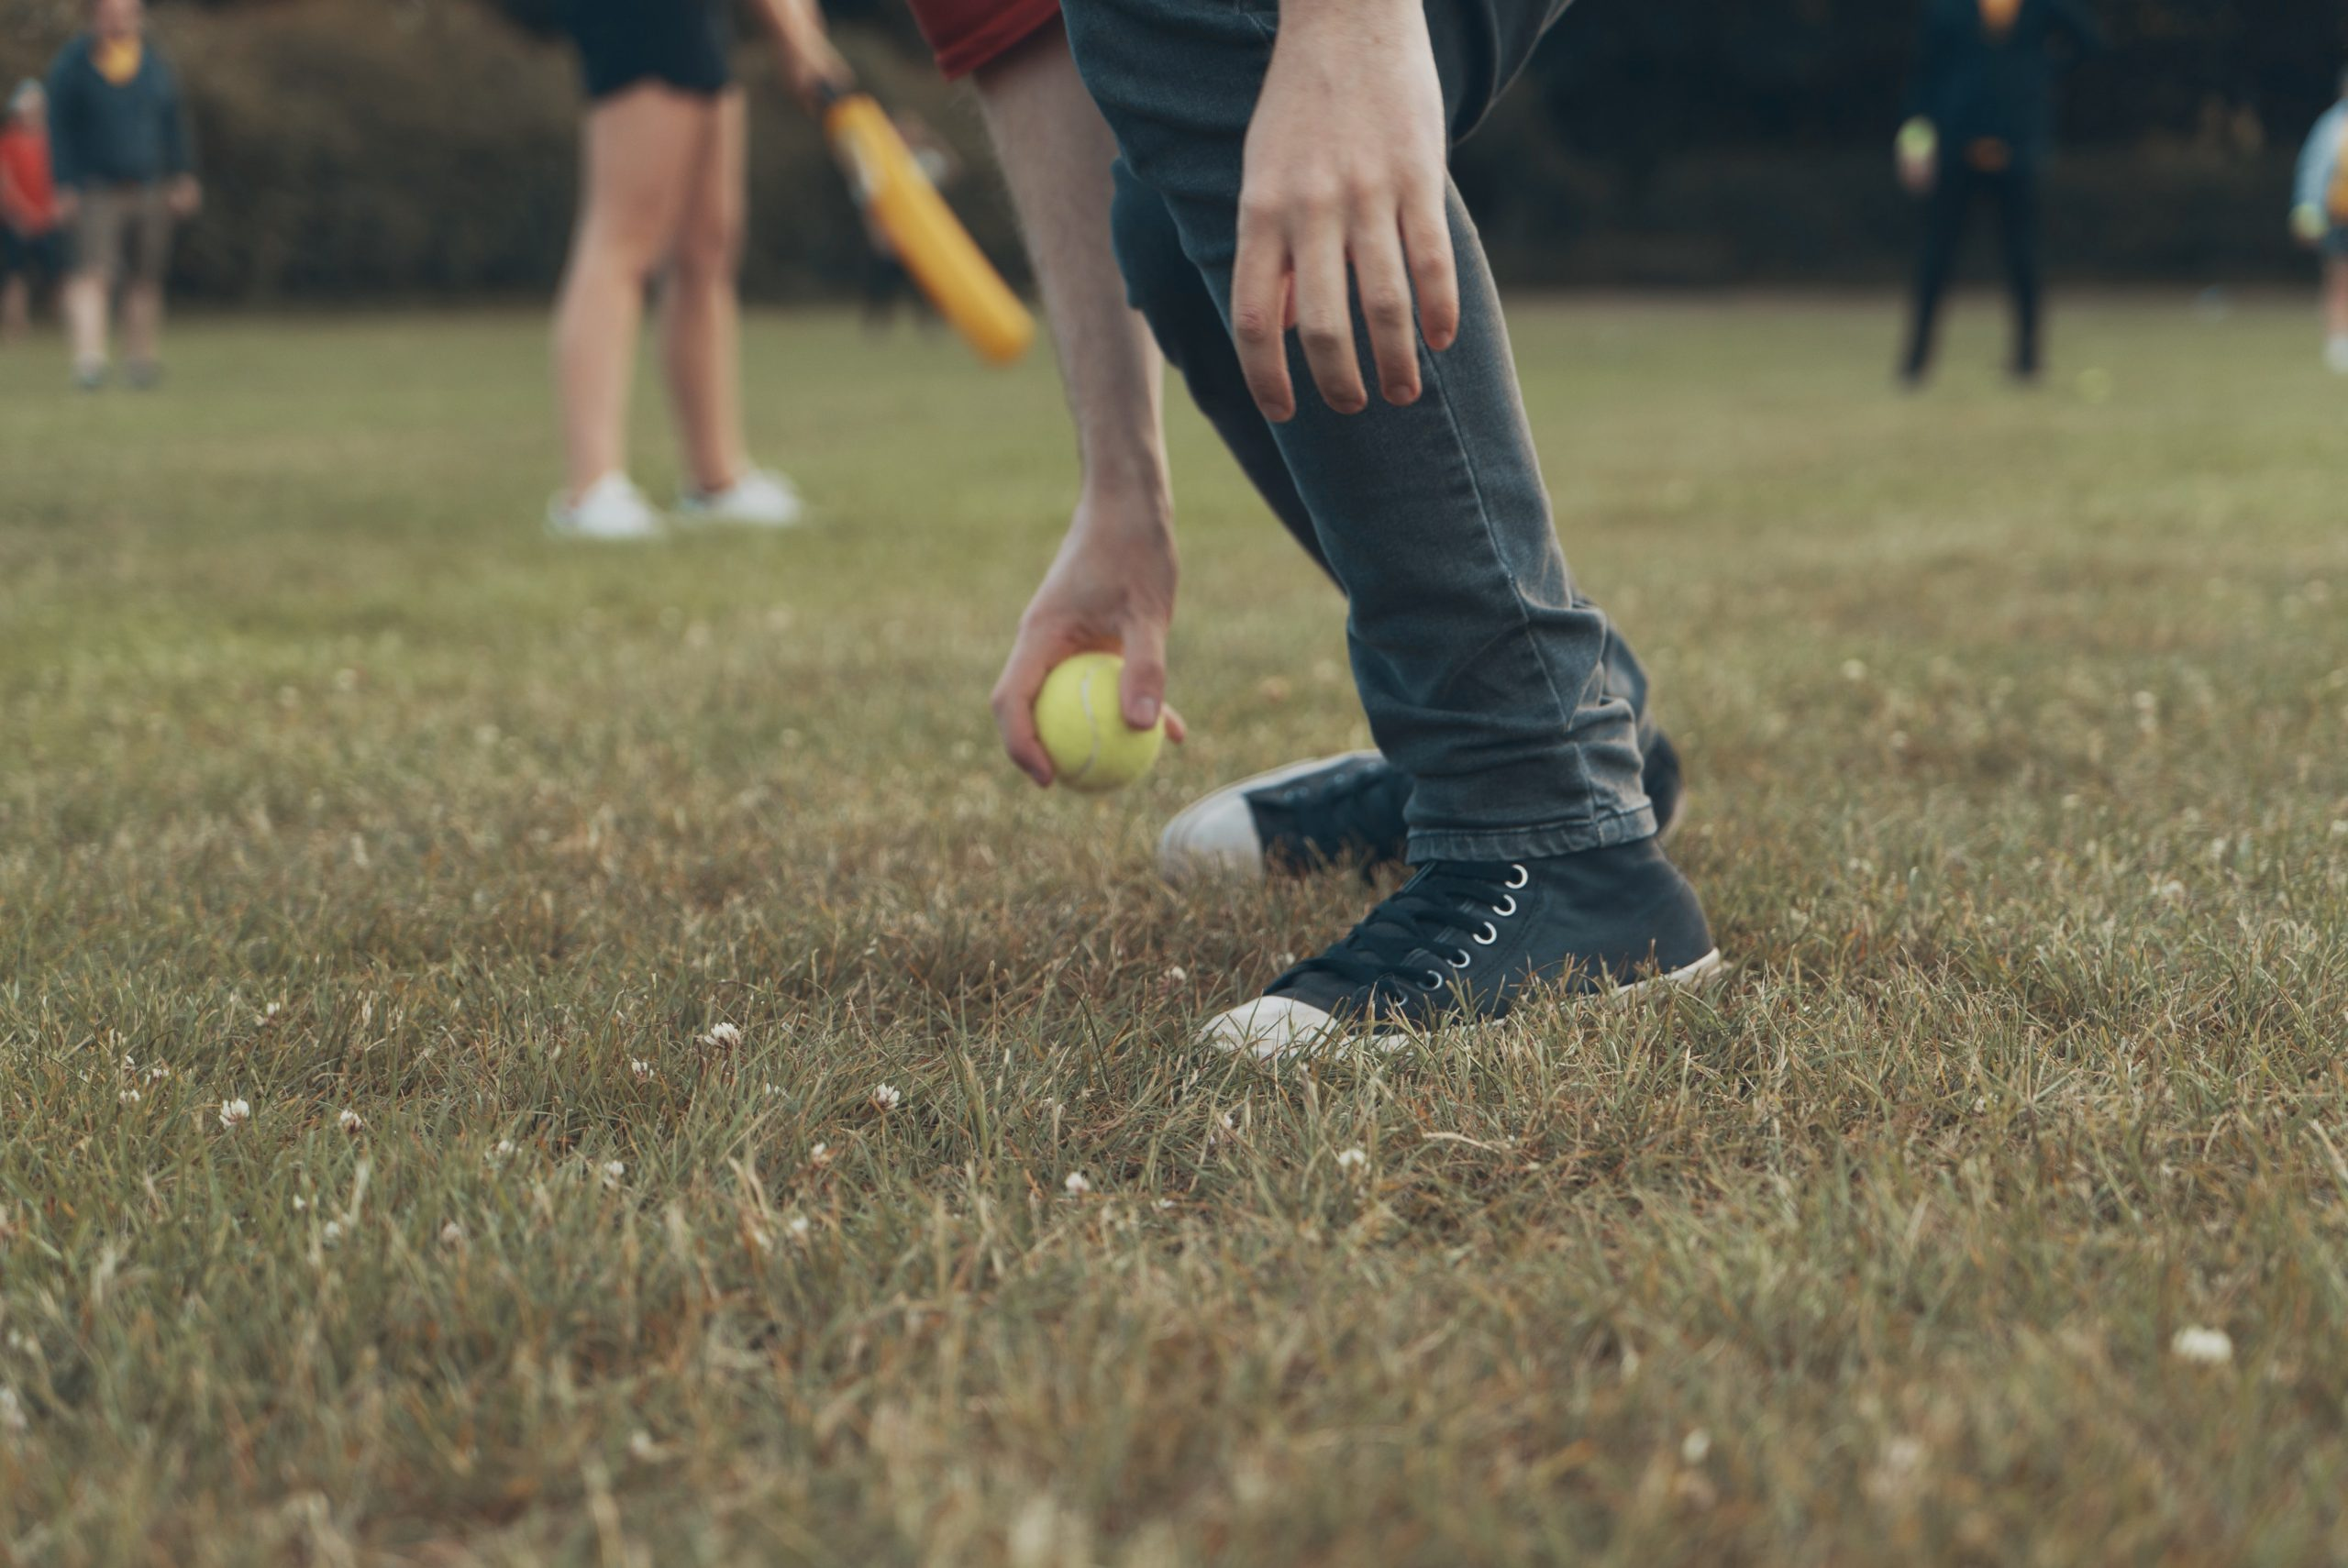 Wholesale Rounders Equipment Suppliers Essex